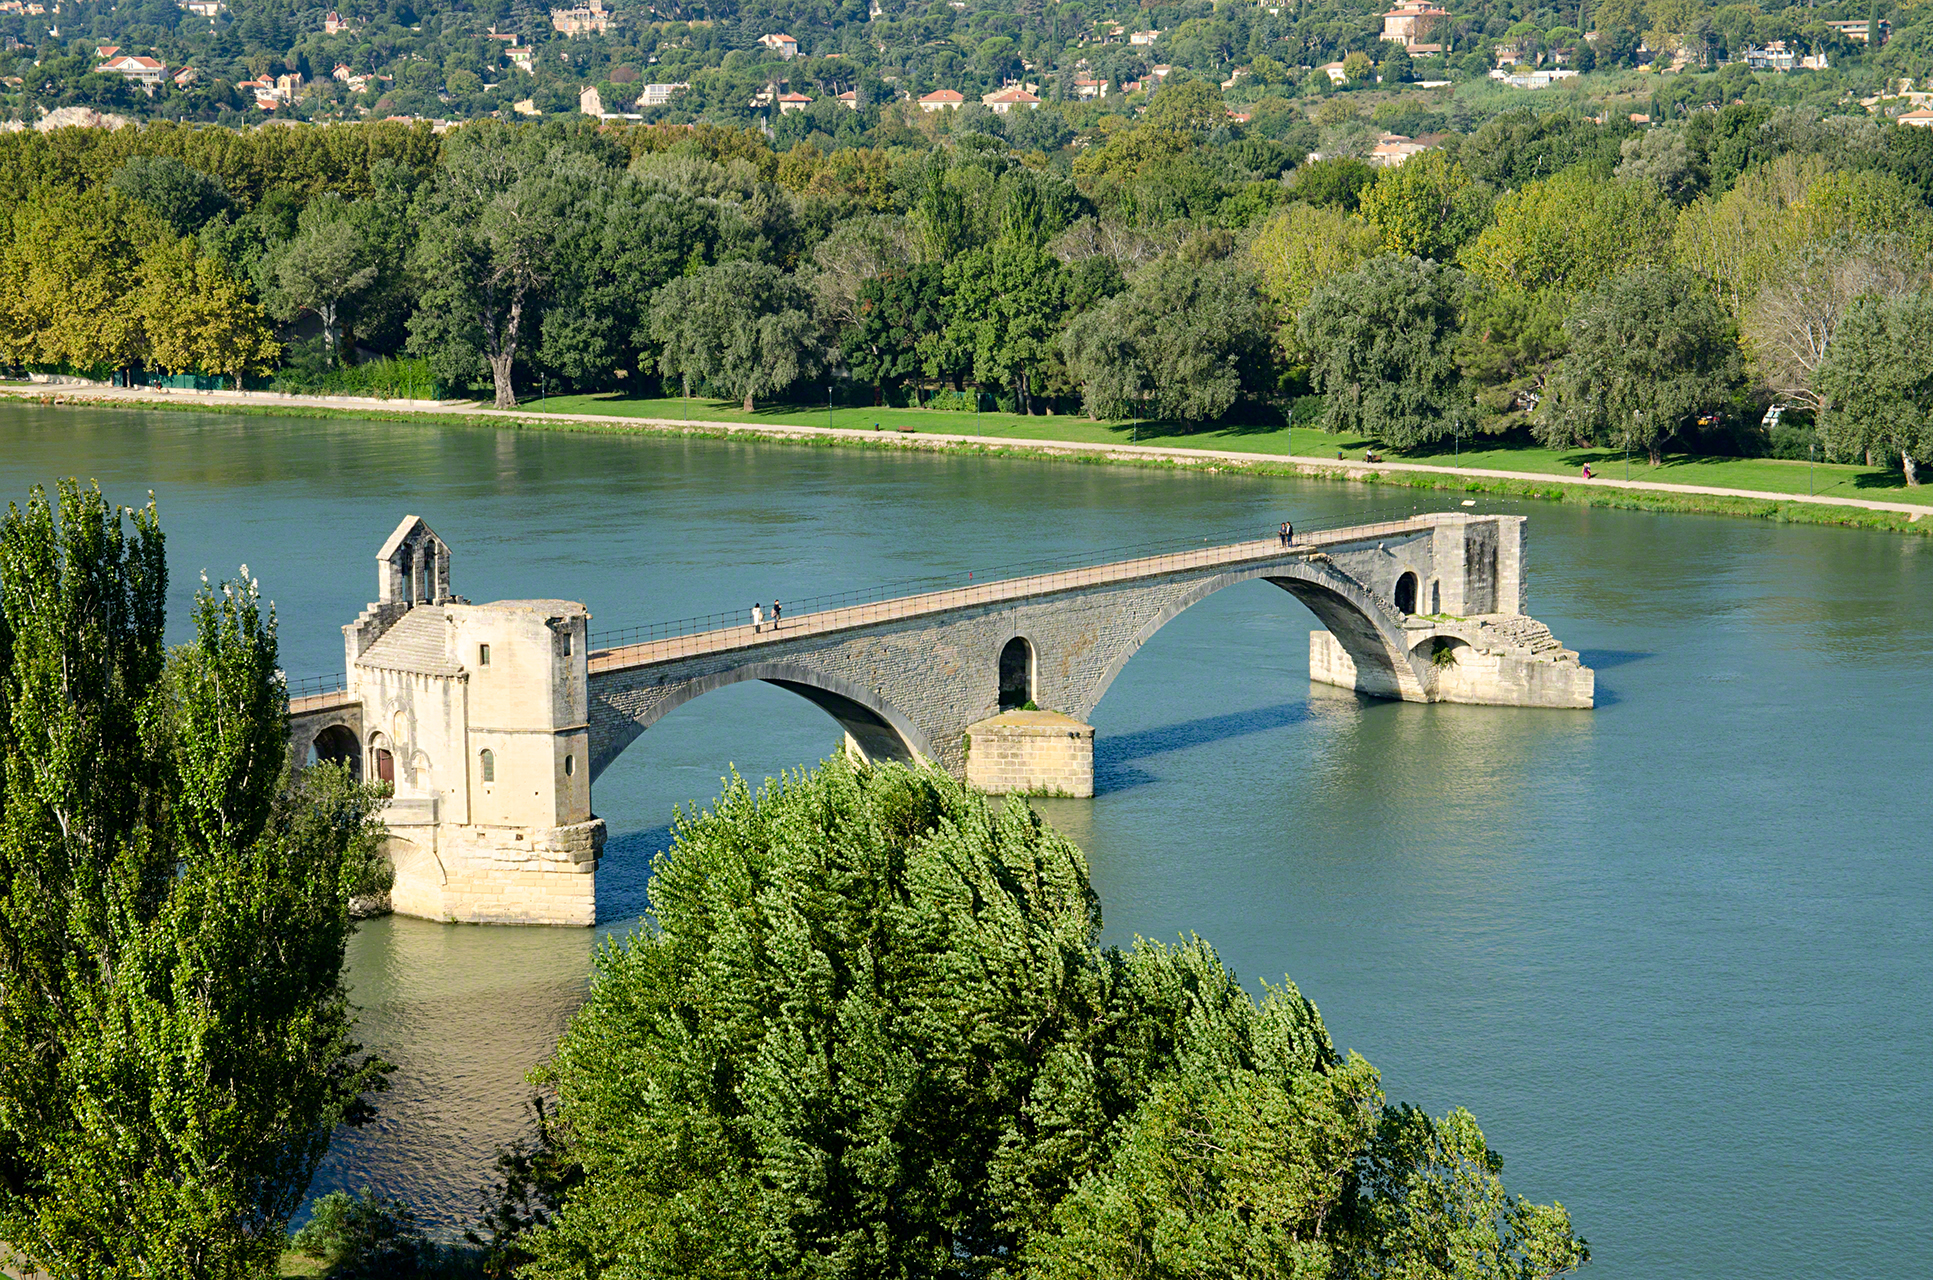 Pont Saint-Bénezet, avignon, france as seen from atop the palais des papes